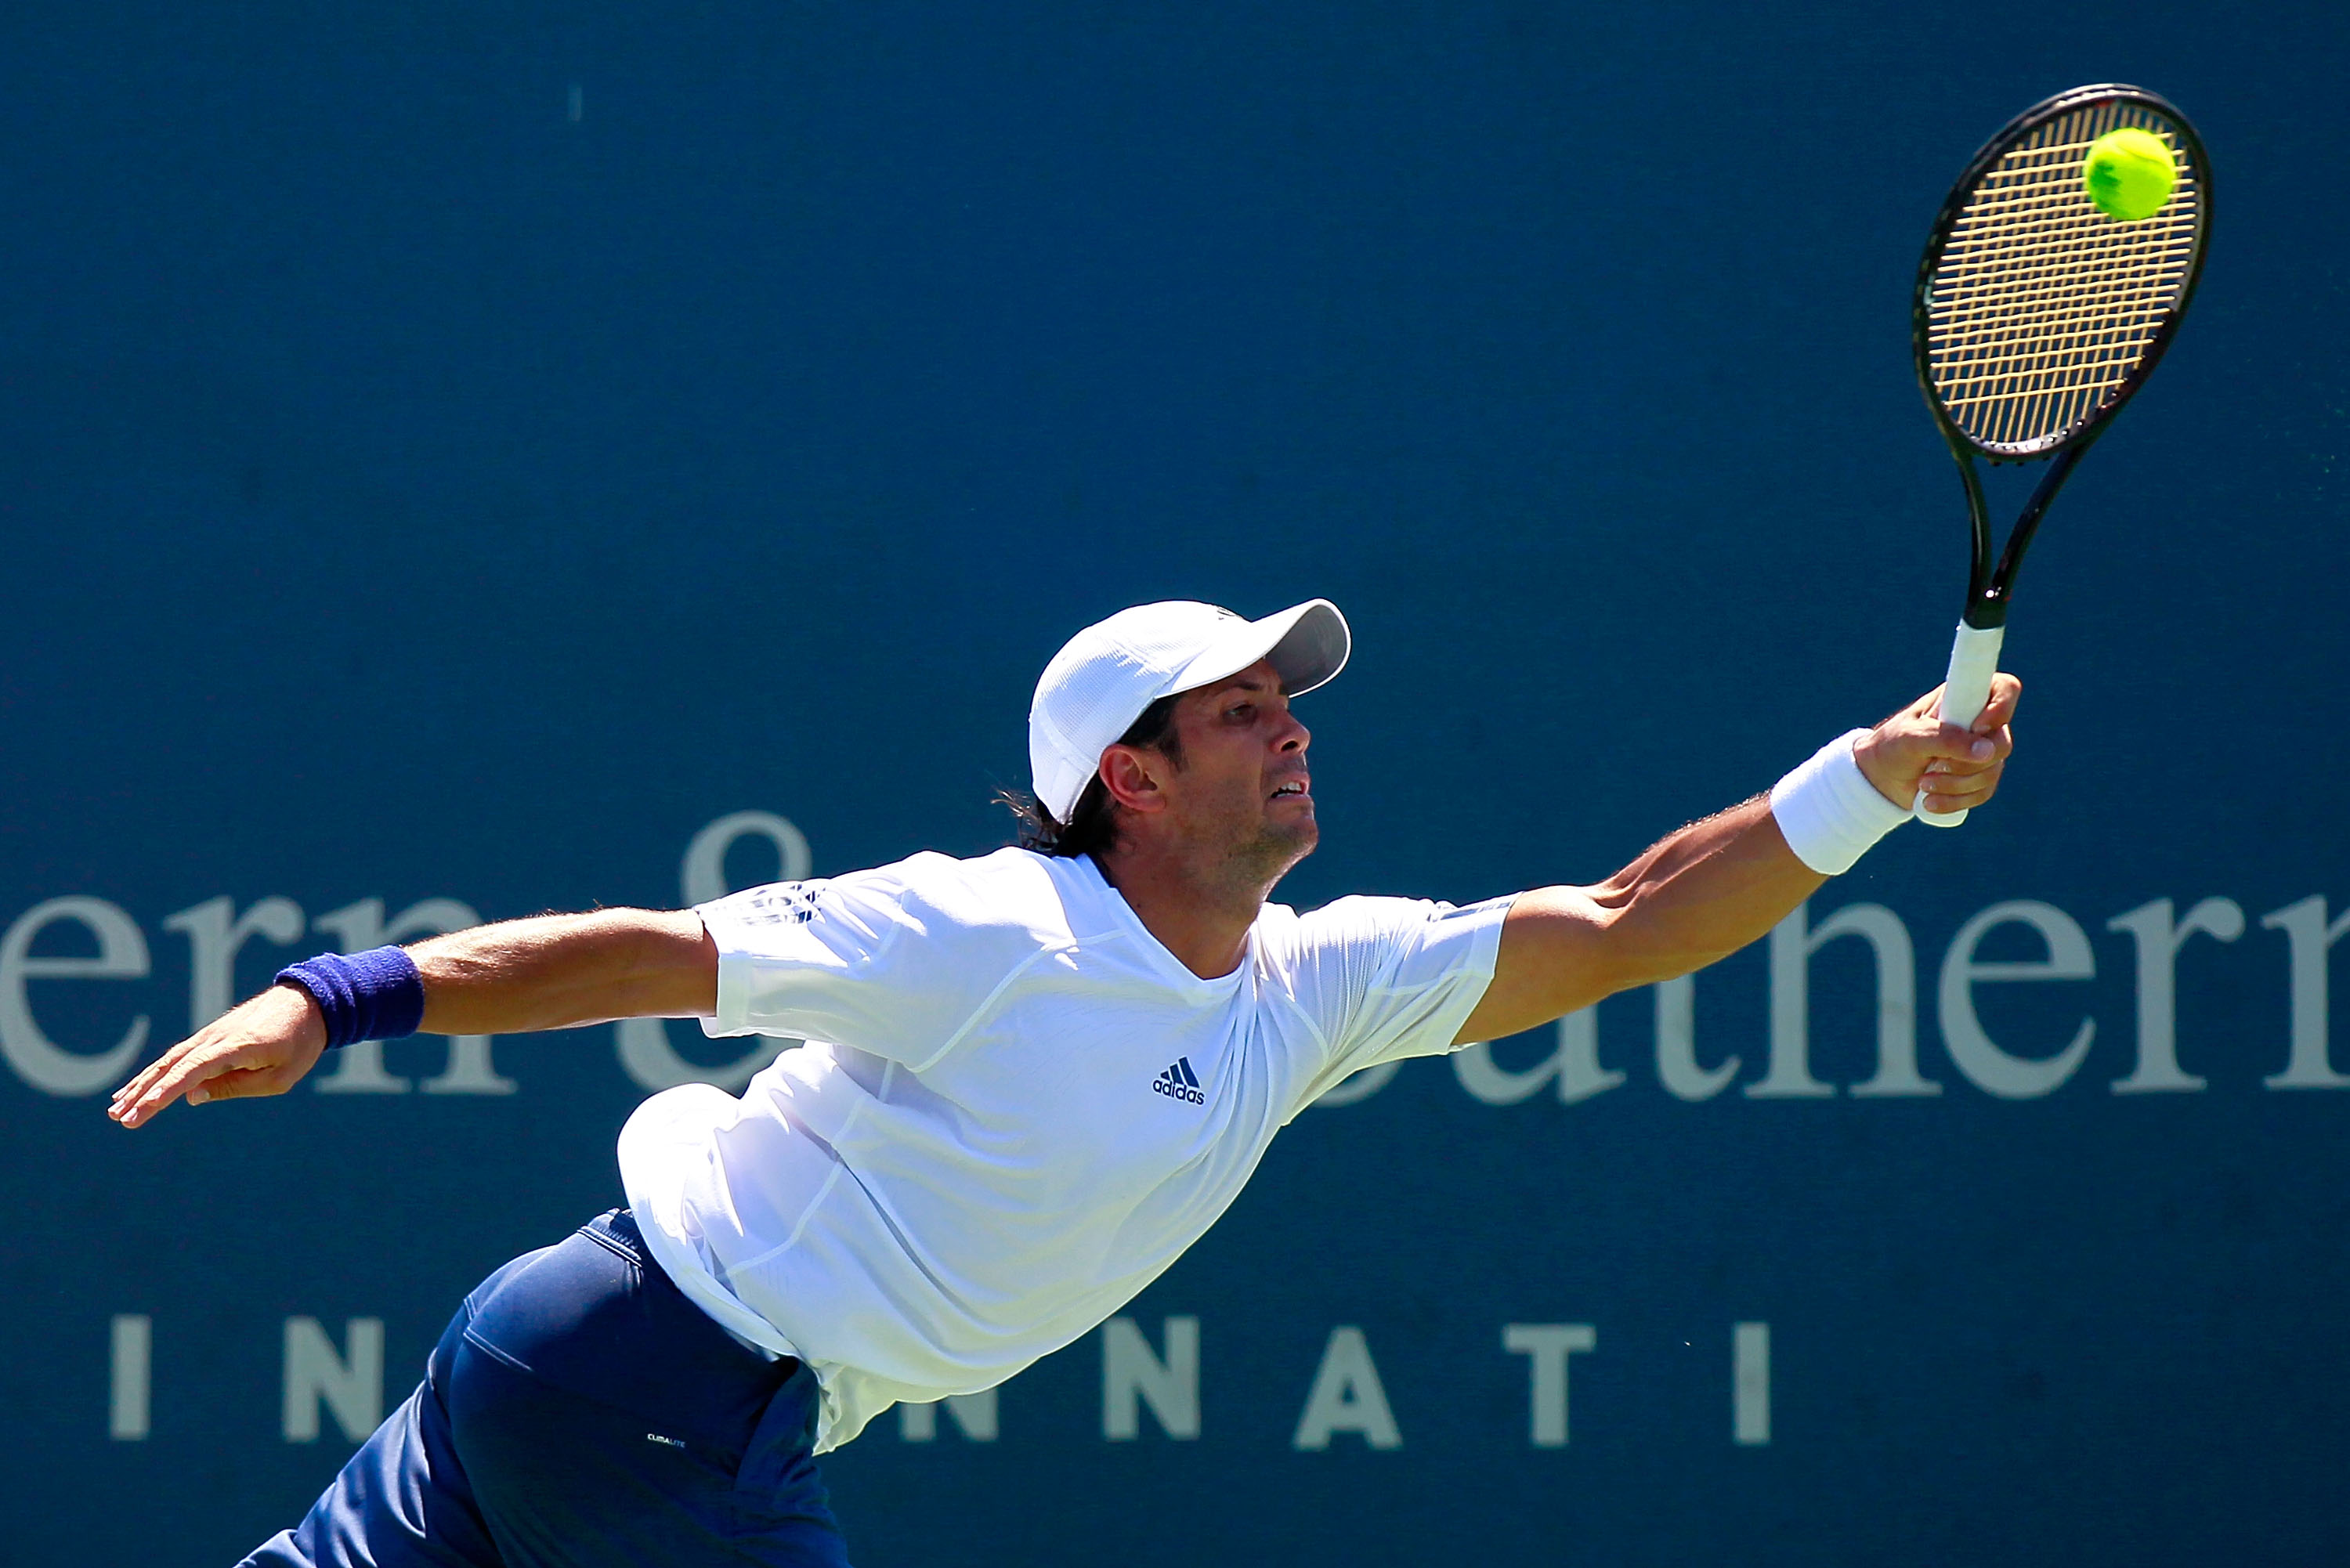 CINCINNATI - AUGUST 18:  Fernando Verdasco of Spain stretches to return a forehand to Mardy Fish during Day 3 of the Western & Southern Financial Group Masters at the Lindner Family Tennis Center on August 18, 2010 in Cincinnati, Ohio.  (Photo by Kevin C.